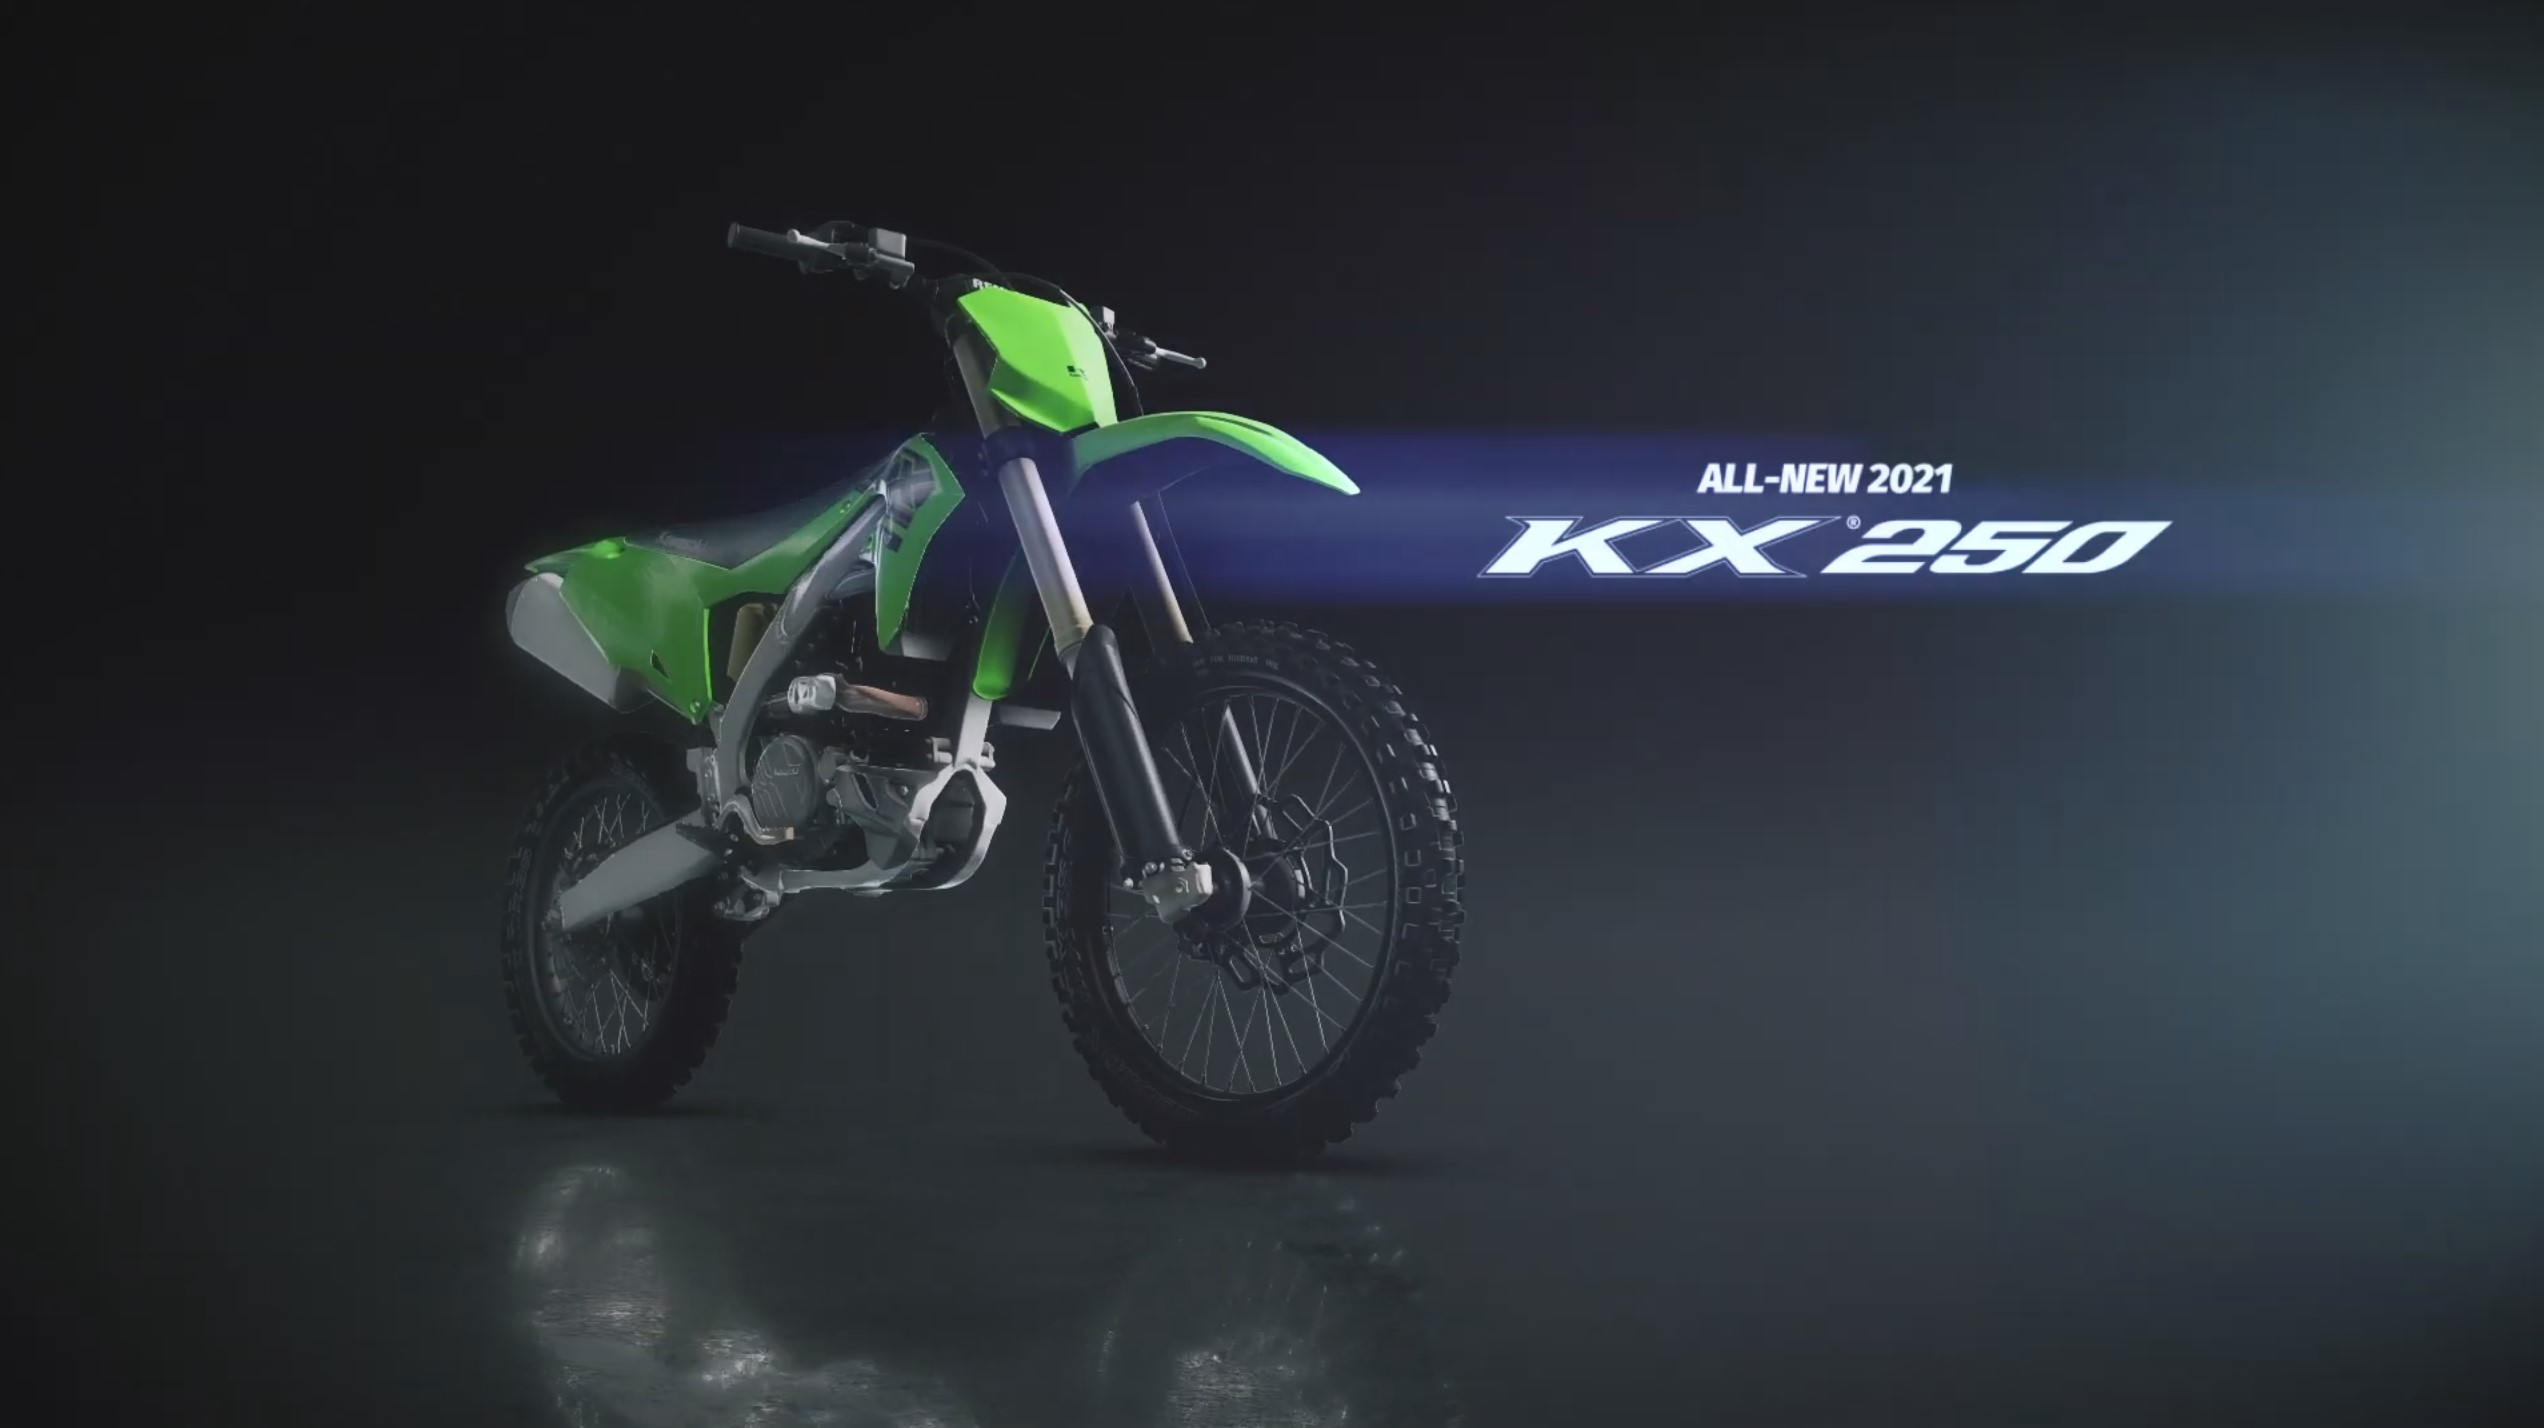 Kawasaki product 3D scan and modeling by the Scan Truck mobile photogrammetry studio Los Angeles